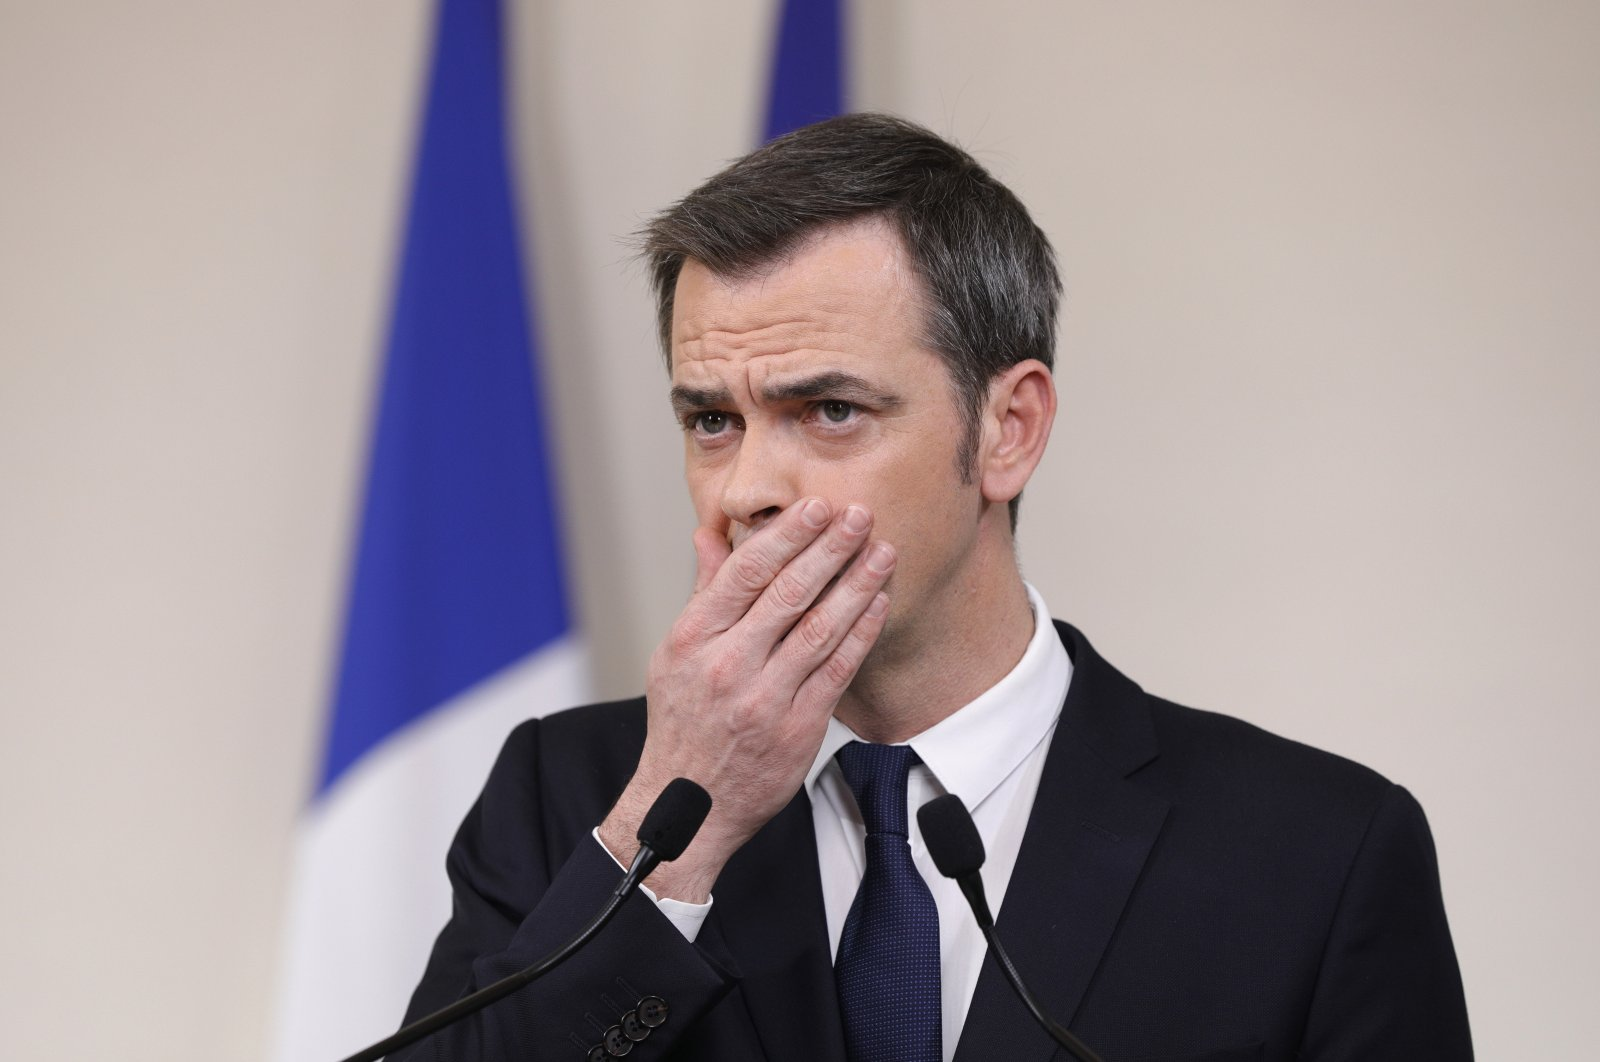 French Minister for Solidarity and Health Olivier Veran speaks during a press conference in Paris on March 28, 2020. (AP Photo)